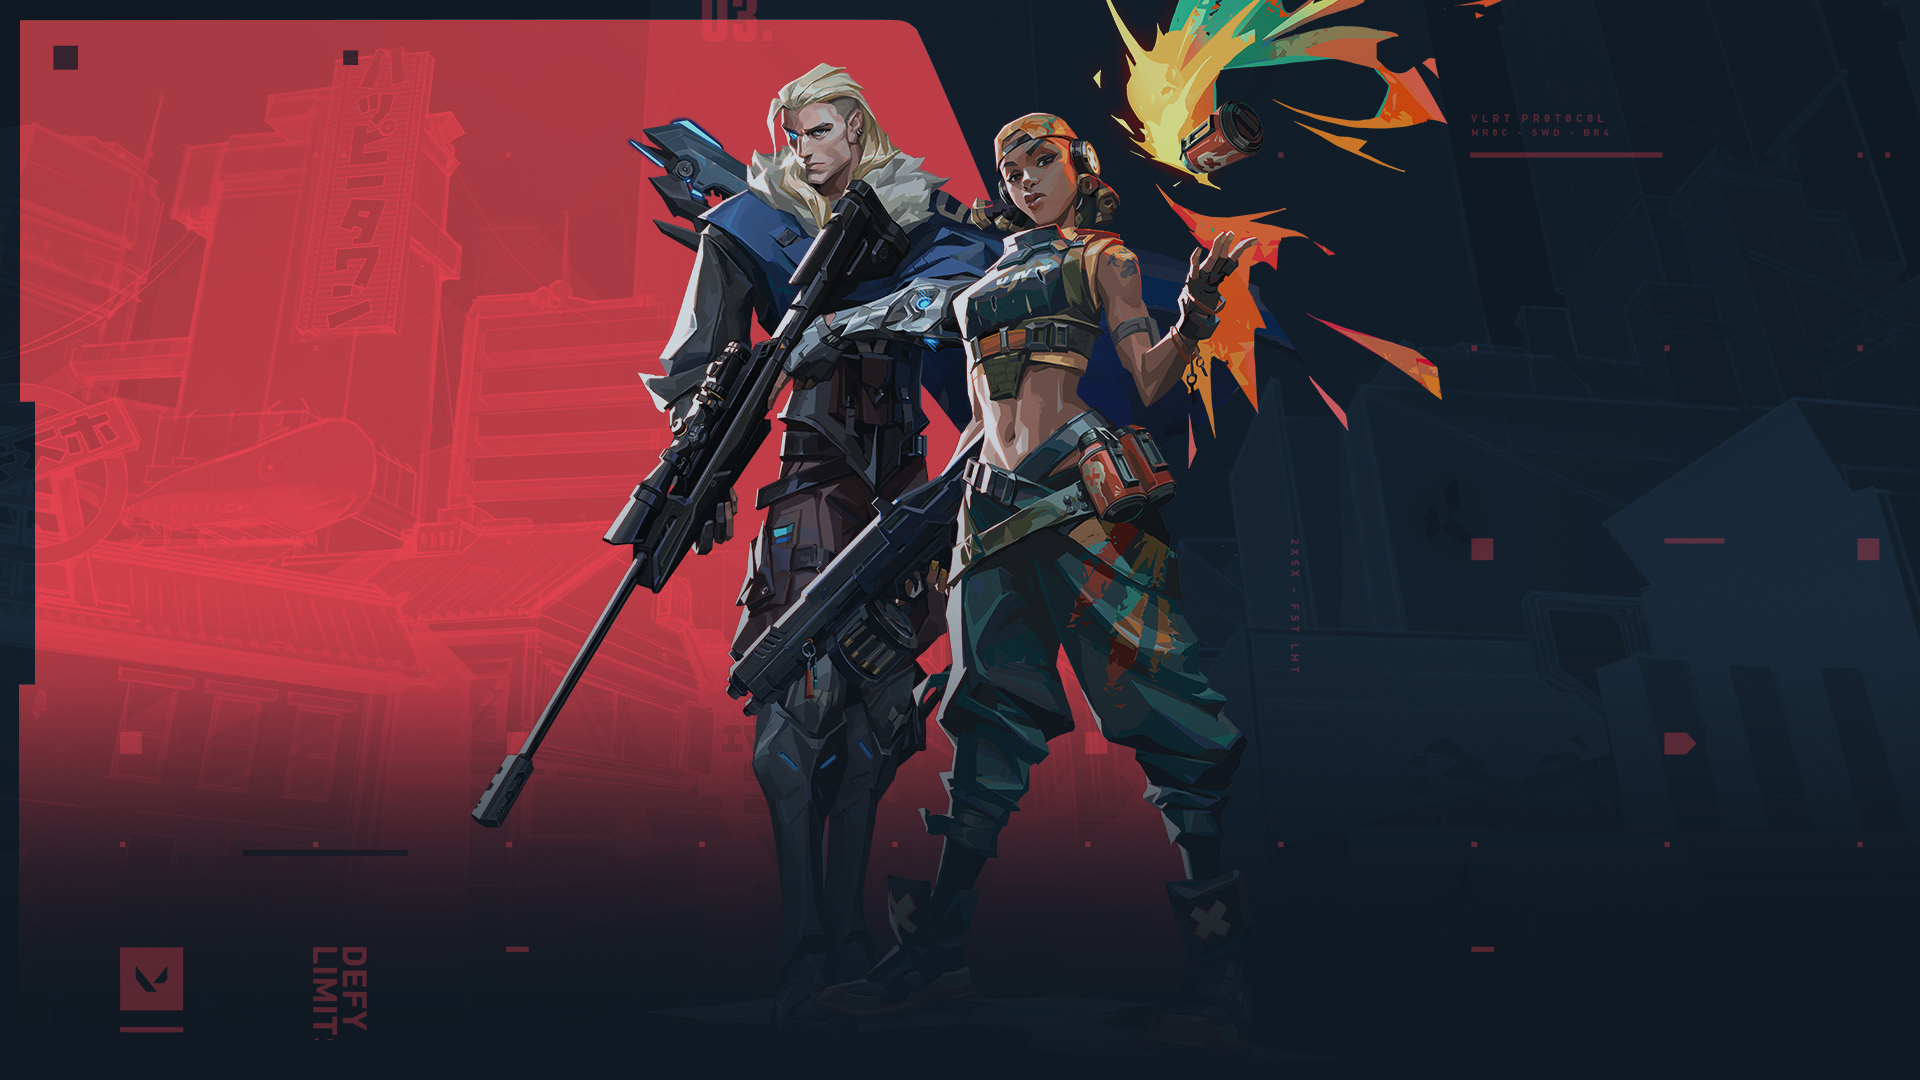 Soza and Raze standing in front of the Valorant logo